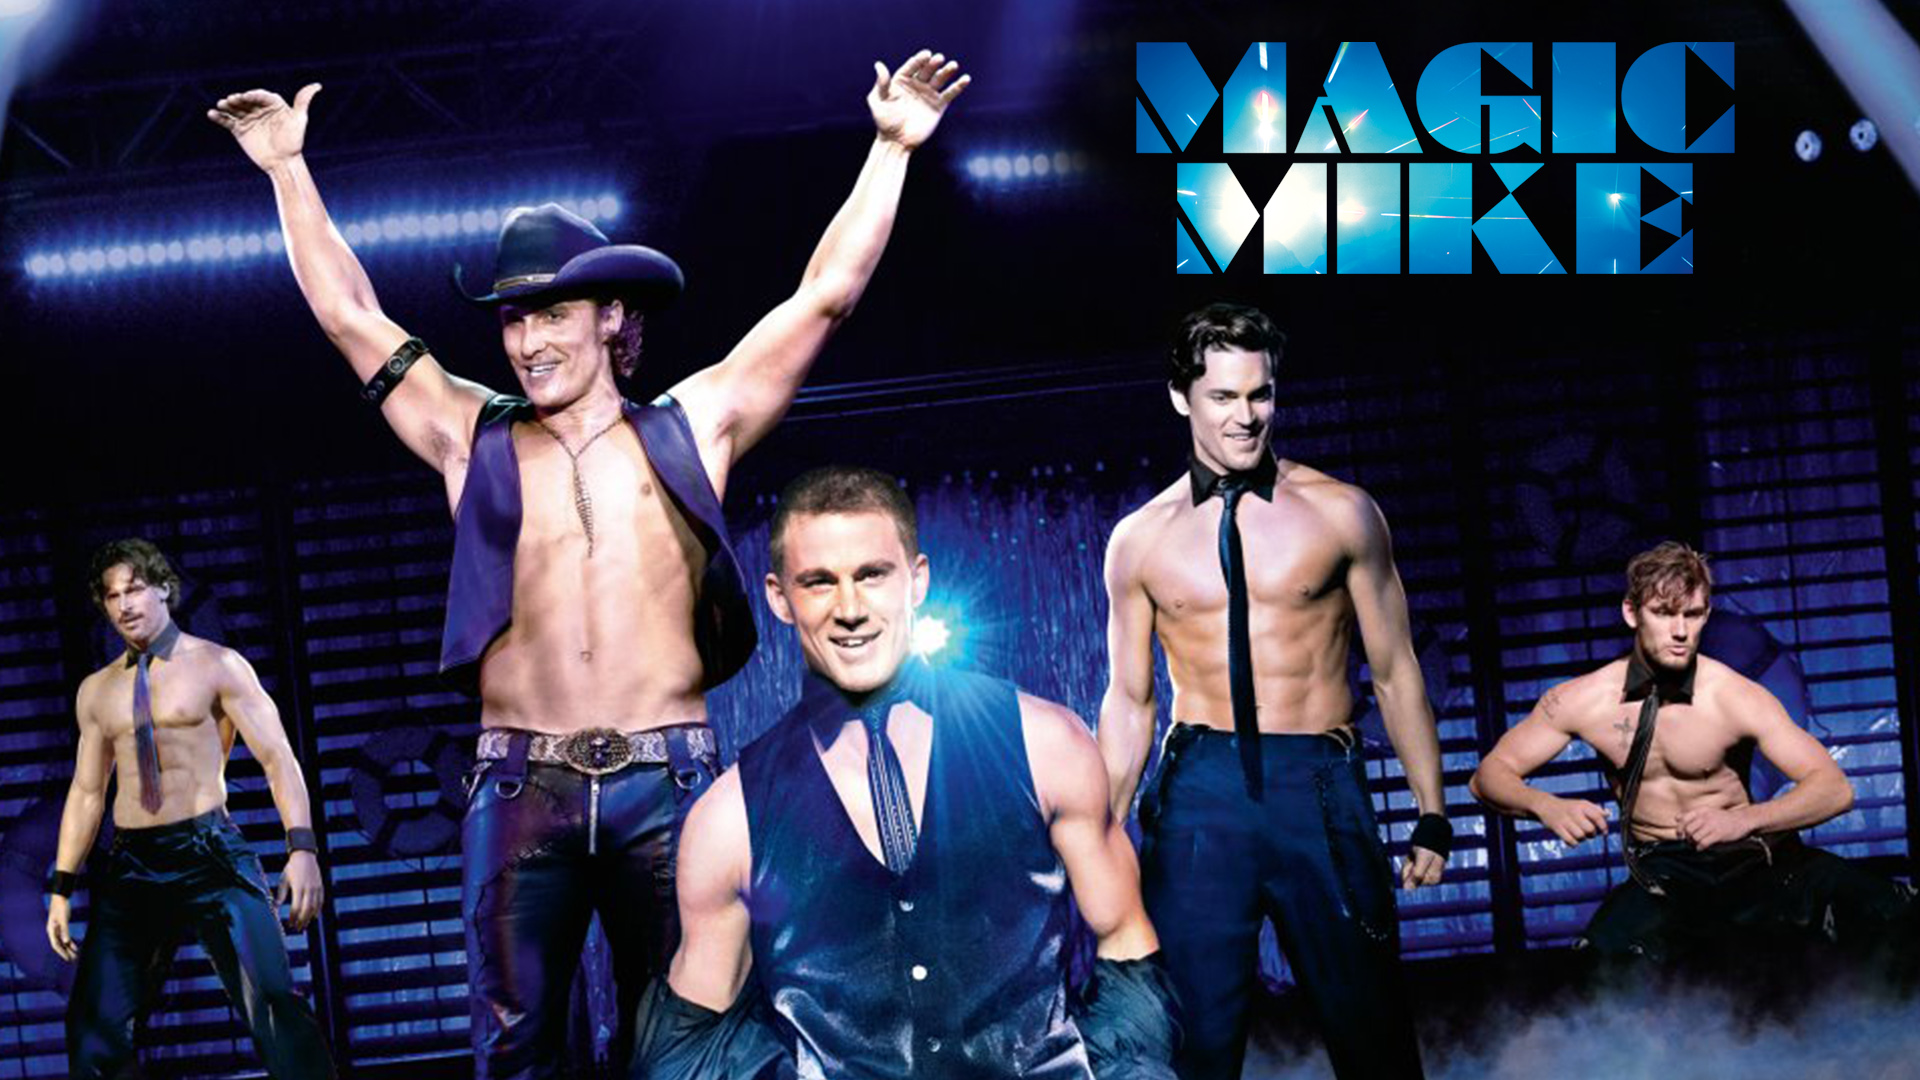 Boondocks Cinema Club - Magic Mike (Singles' Night!)